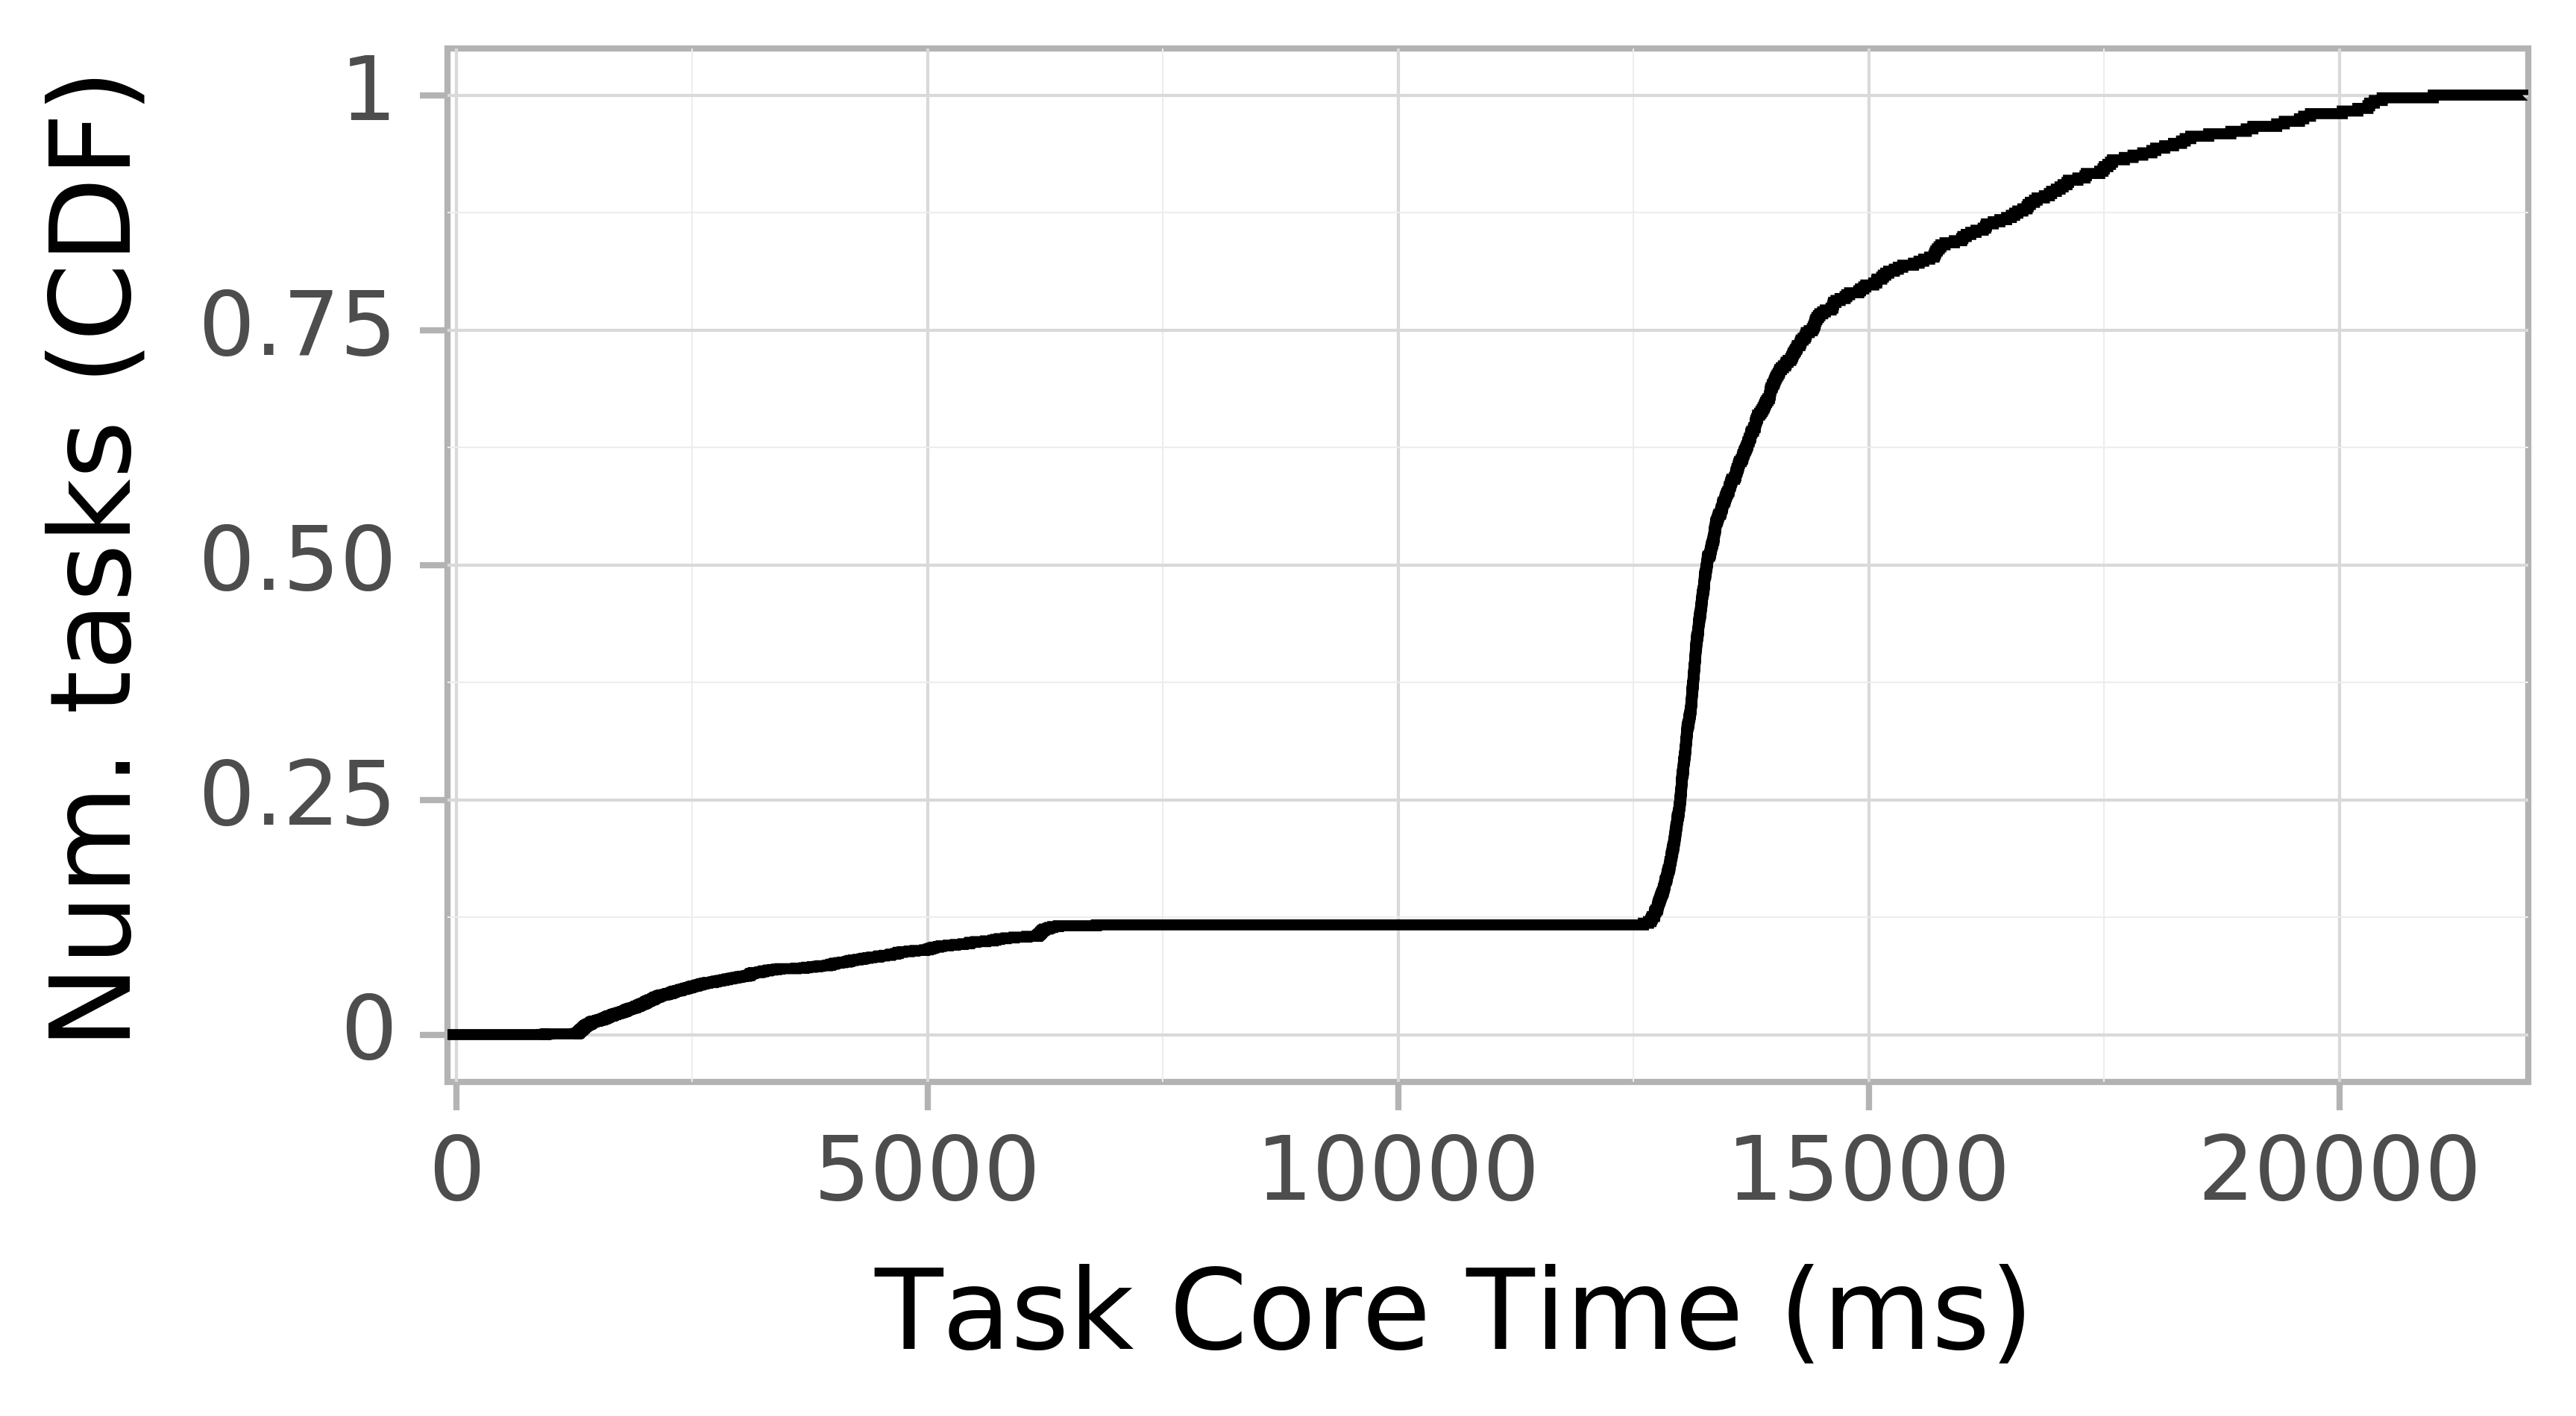 task resource time CDF graph for the askalon-new_ee25 trace.